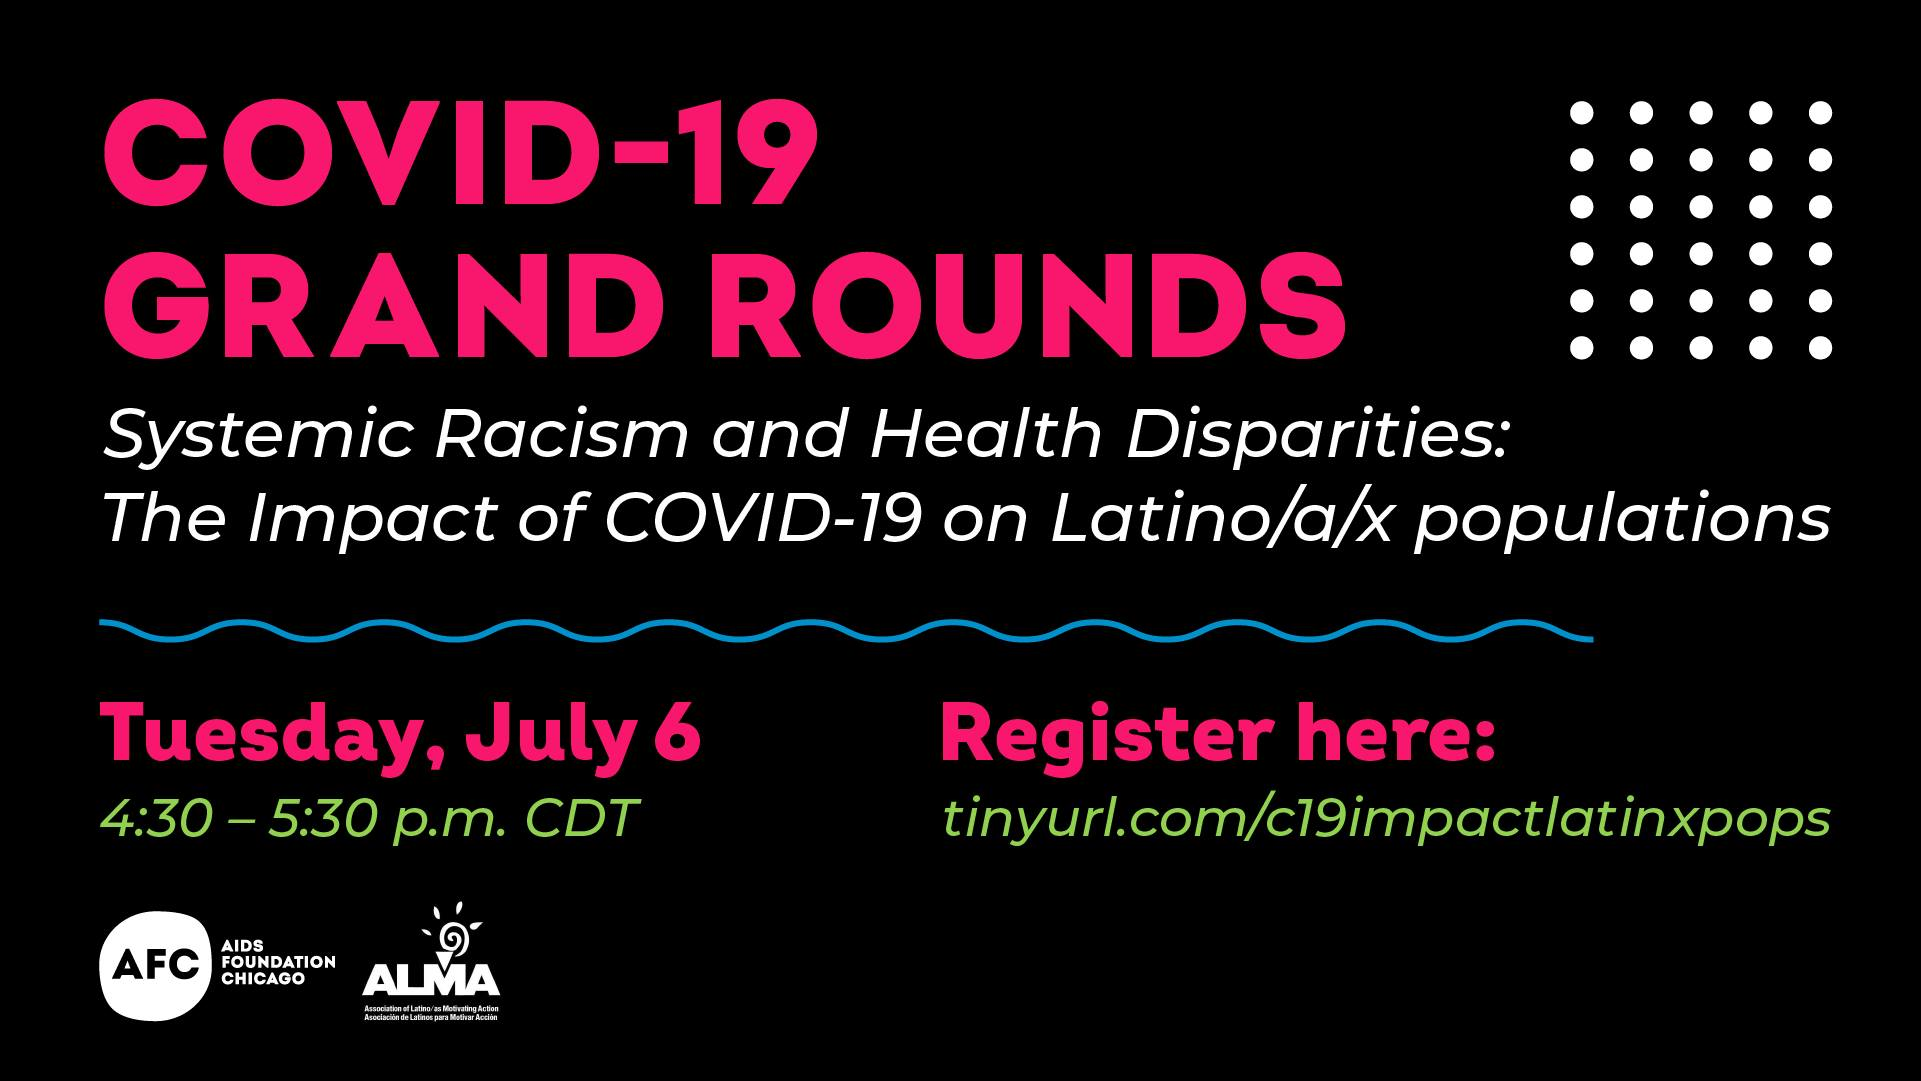 Systemic Racism and Health Disparities: The Impact of COVID-19 on Latino/a/x via @joinlcac